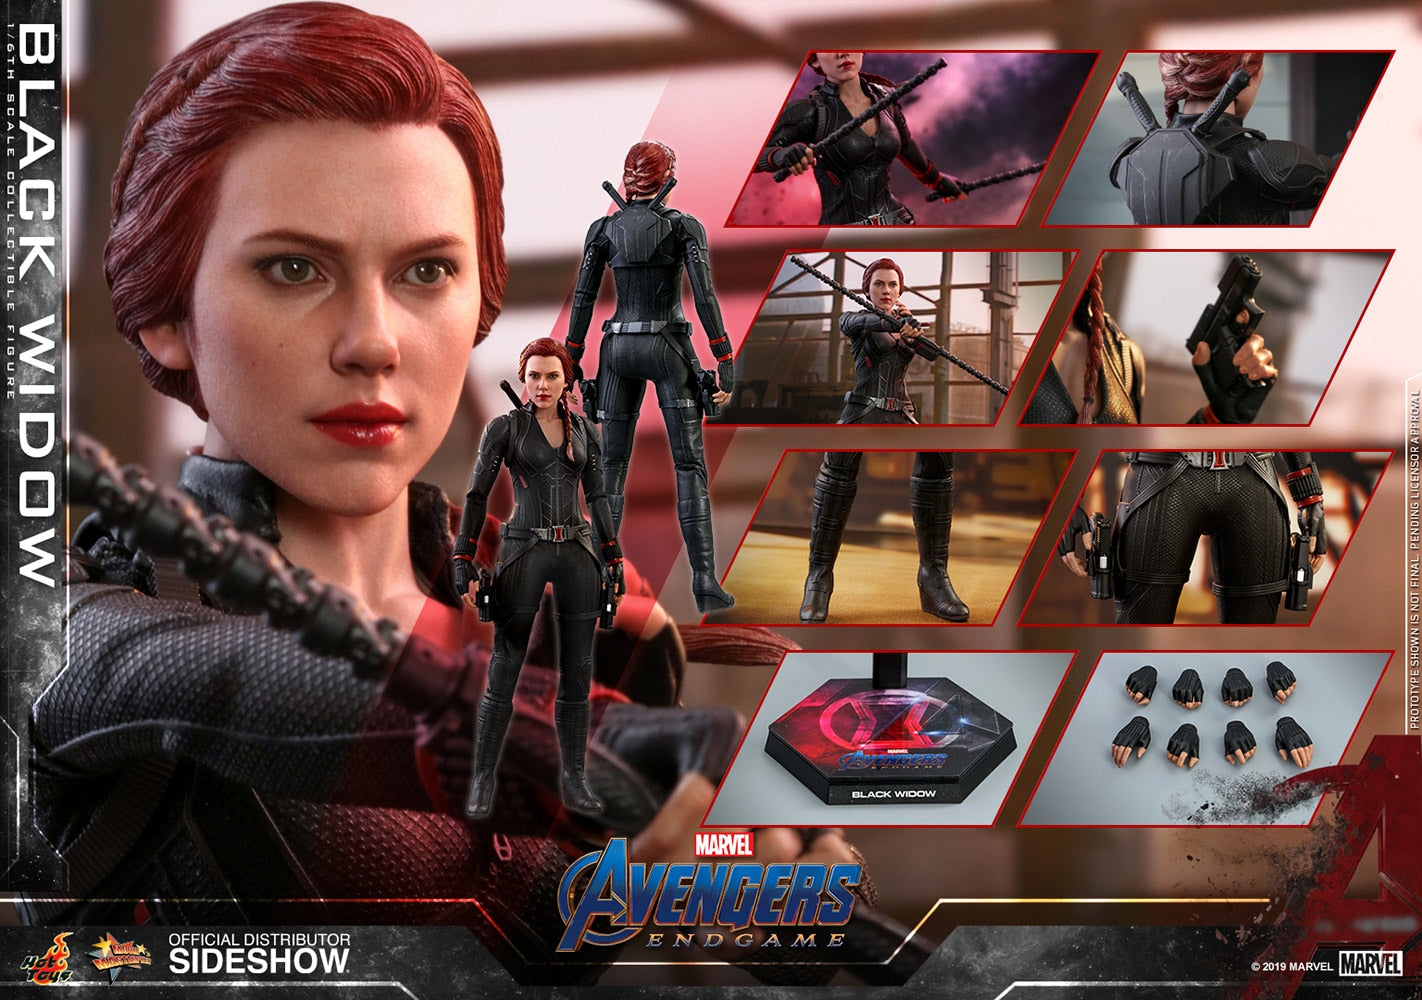 Hot Toys Black Widow Marvel Avengers: Endgame Sixth Scale Figure - Collectors Row Inc.